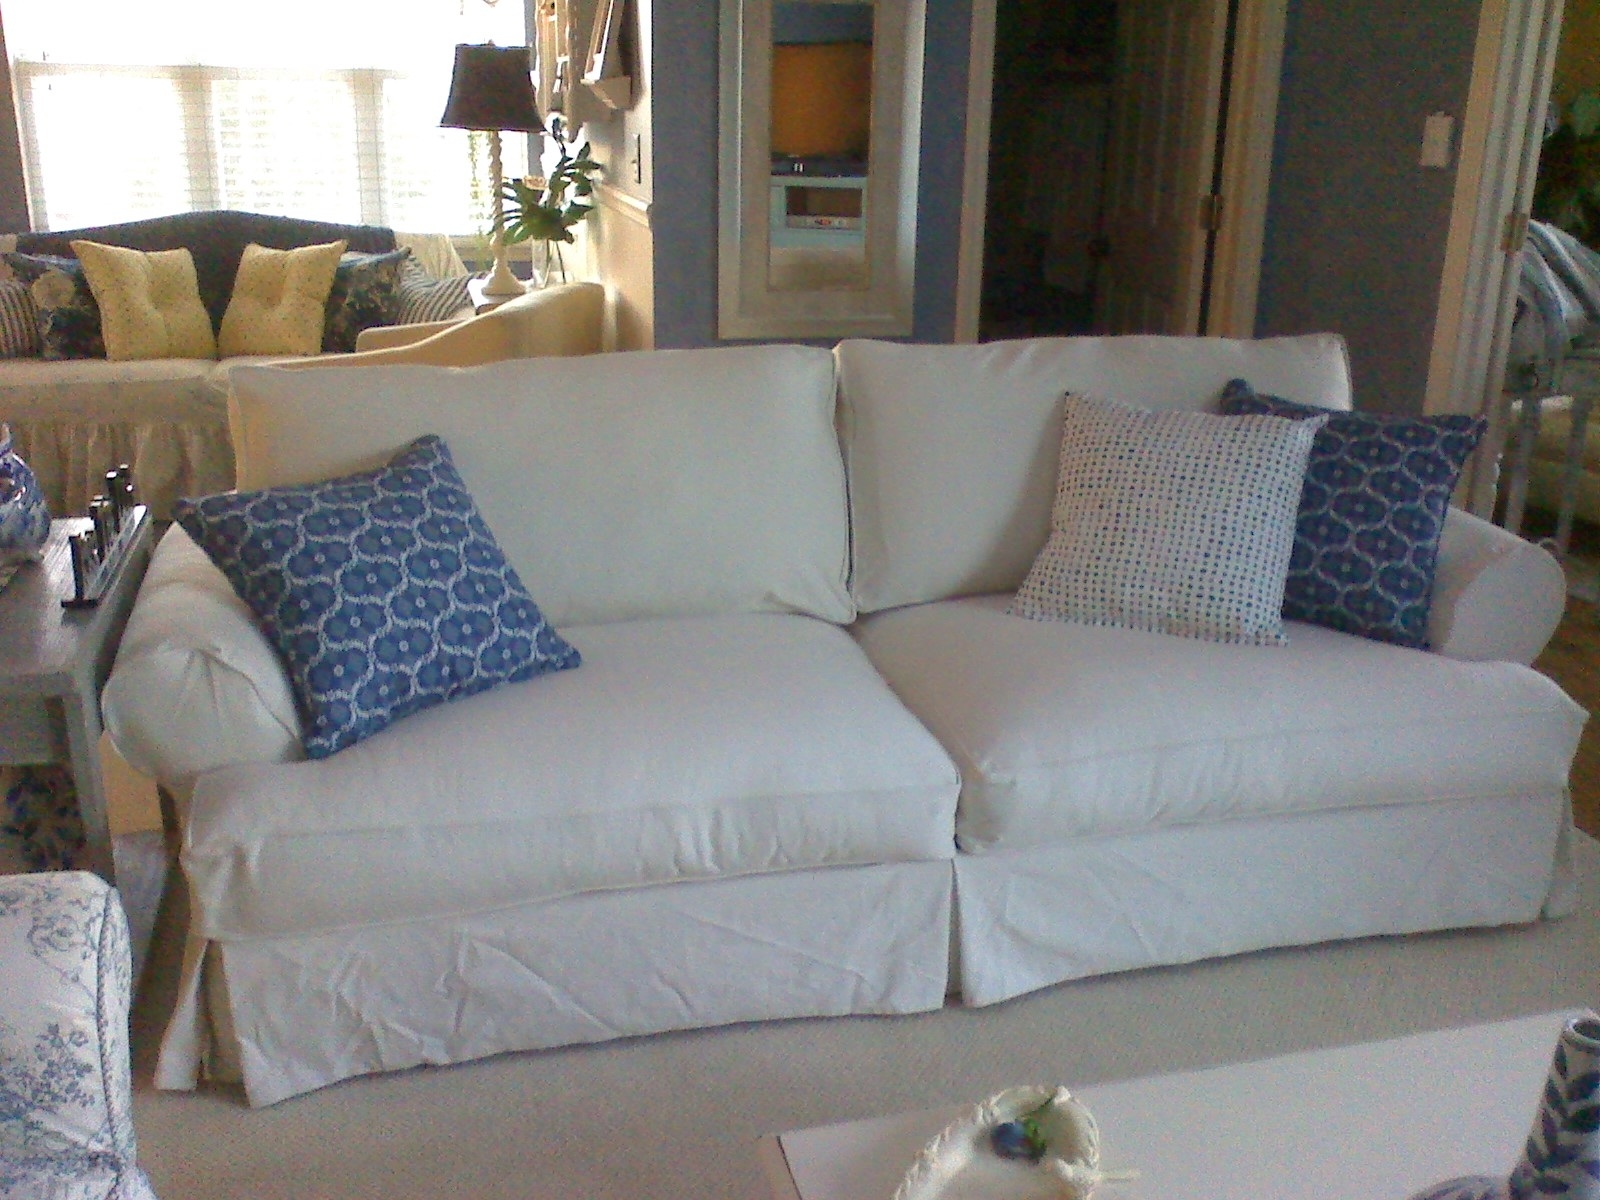 Sofas With Washable Covers With Regard To Well Known Slipcovers For Sofas Be Equipped L Couch Covers Be Equipped (View 12 of 15)